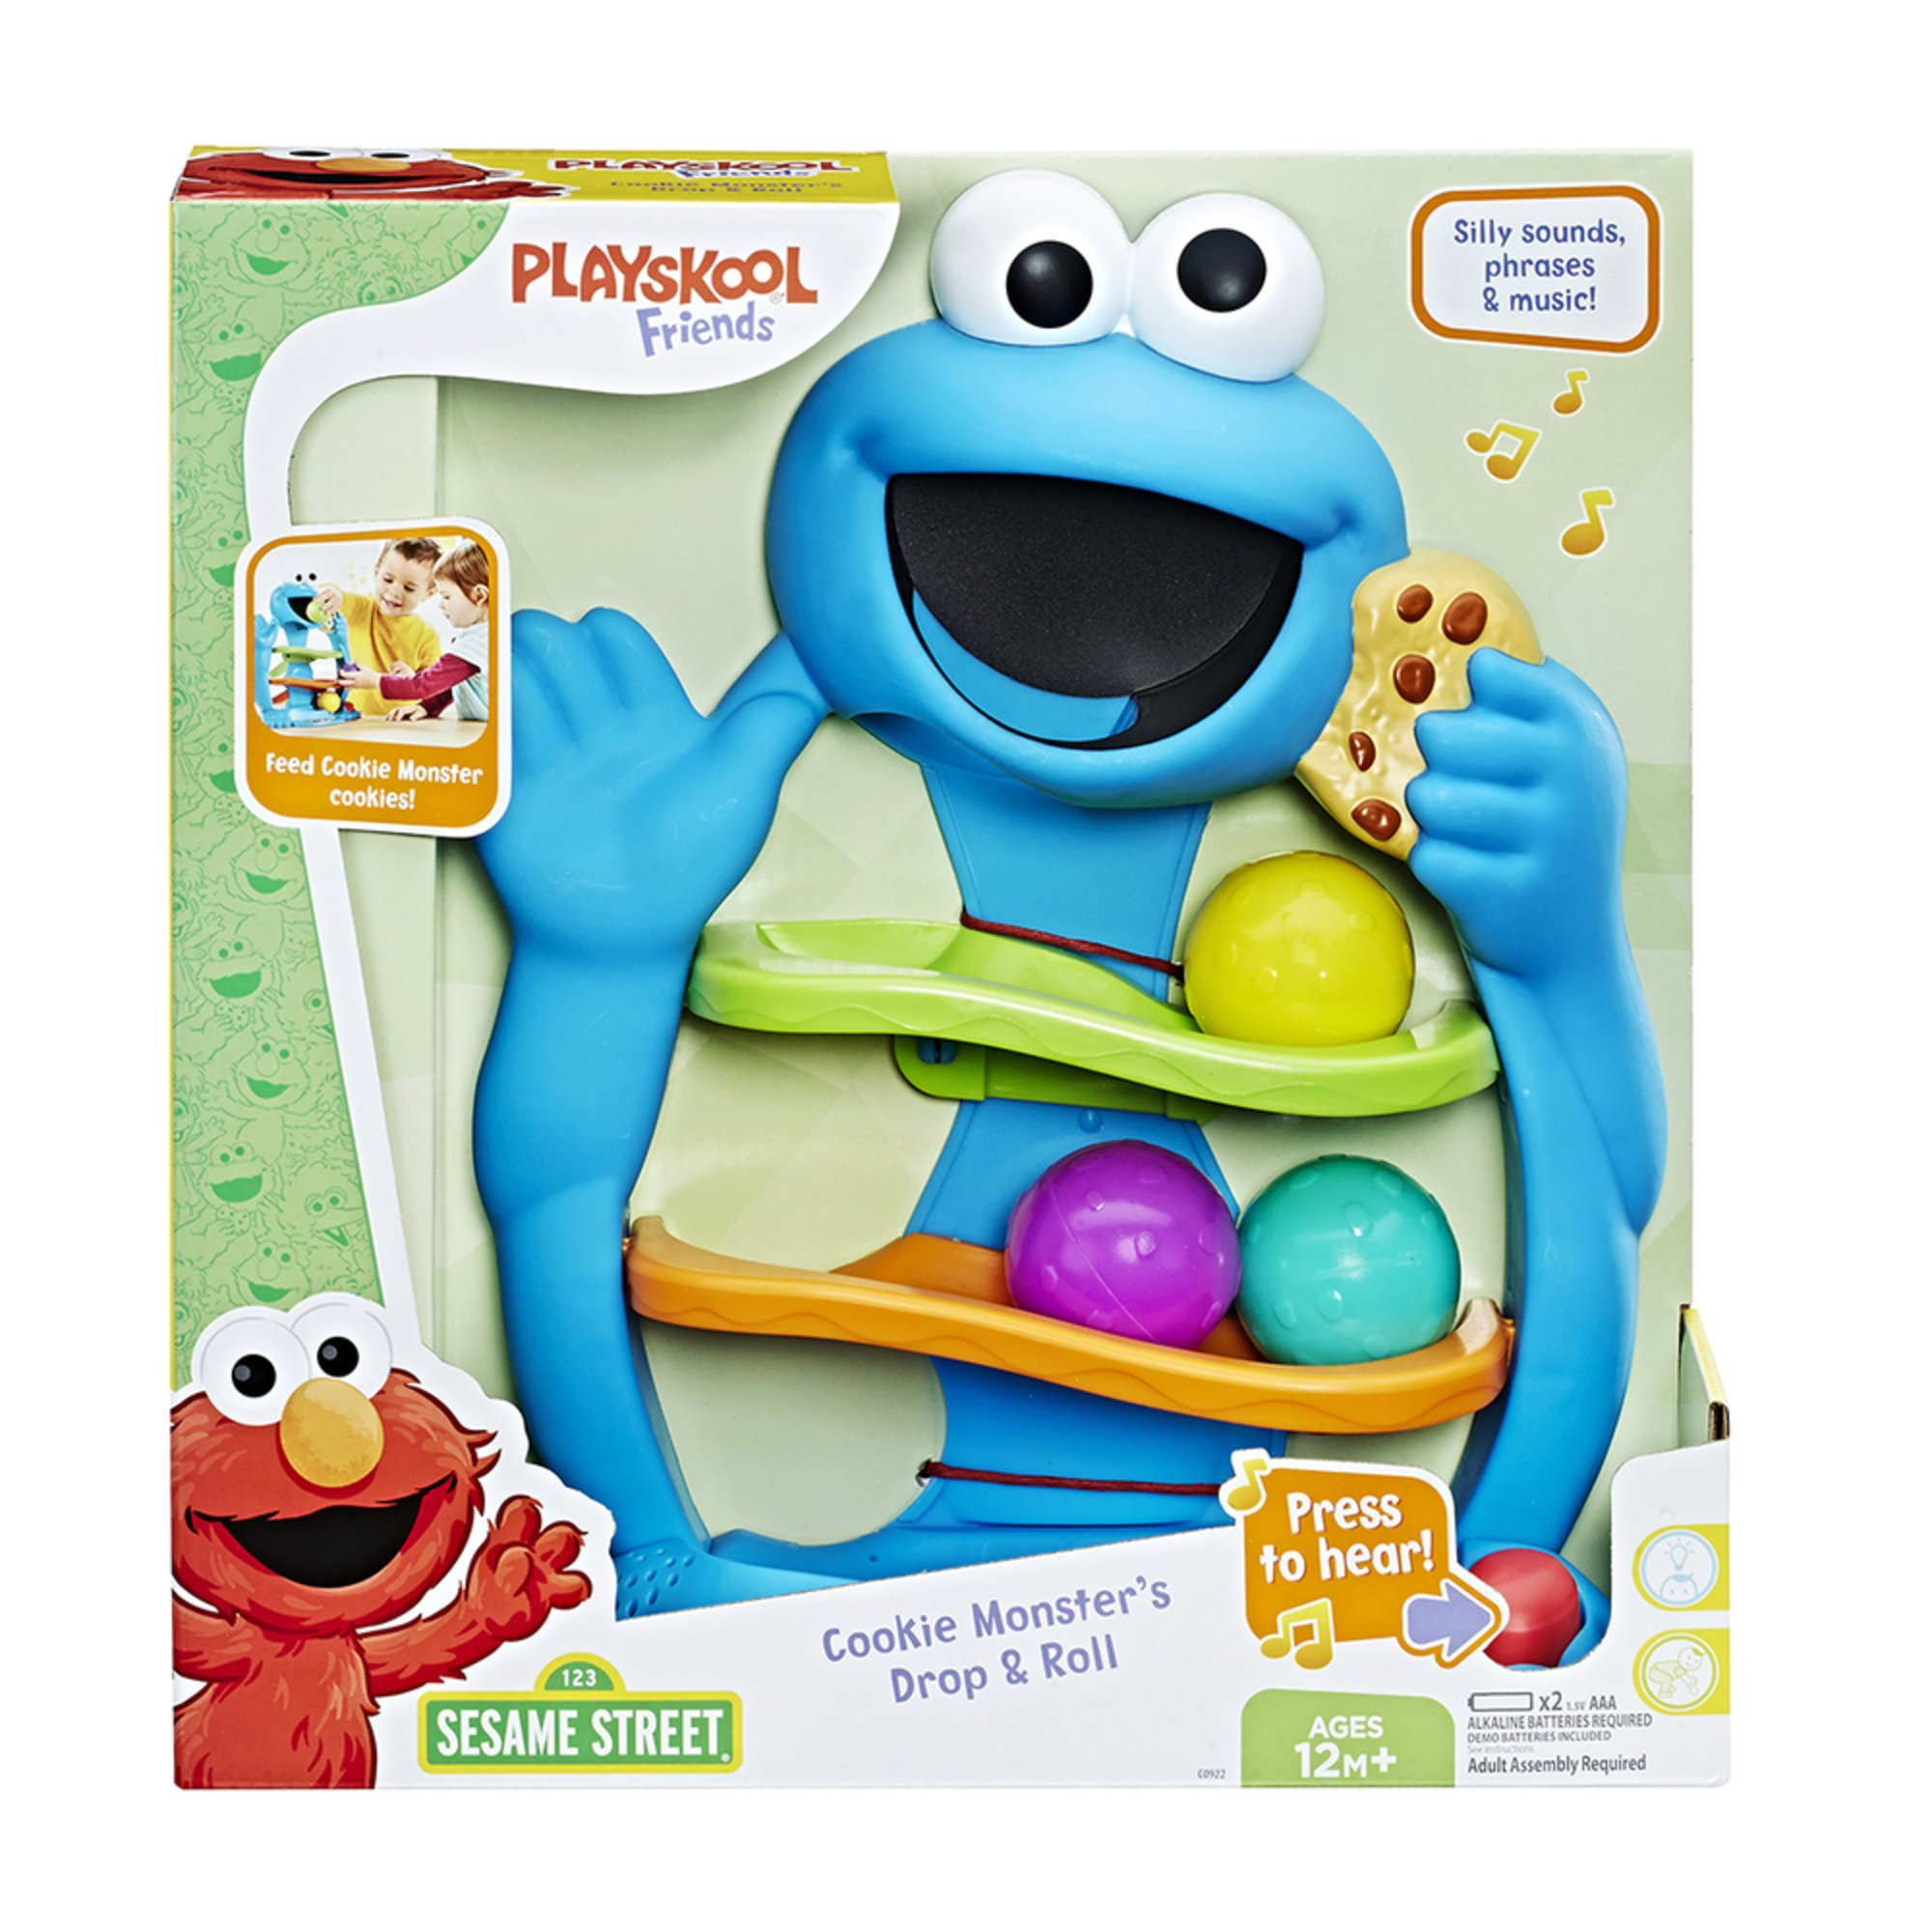 30bbfcb72 Playskool Friends Sesame Street Cookie Monster Drop And Roll | Early ...